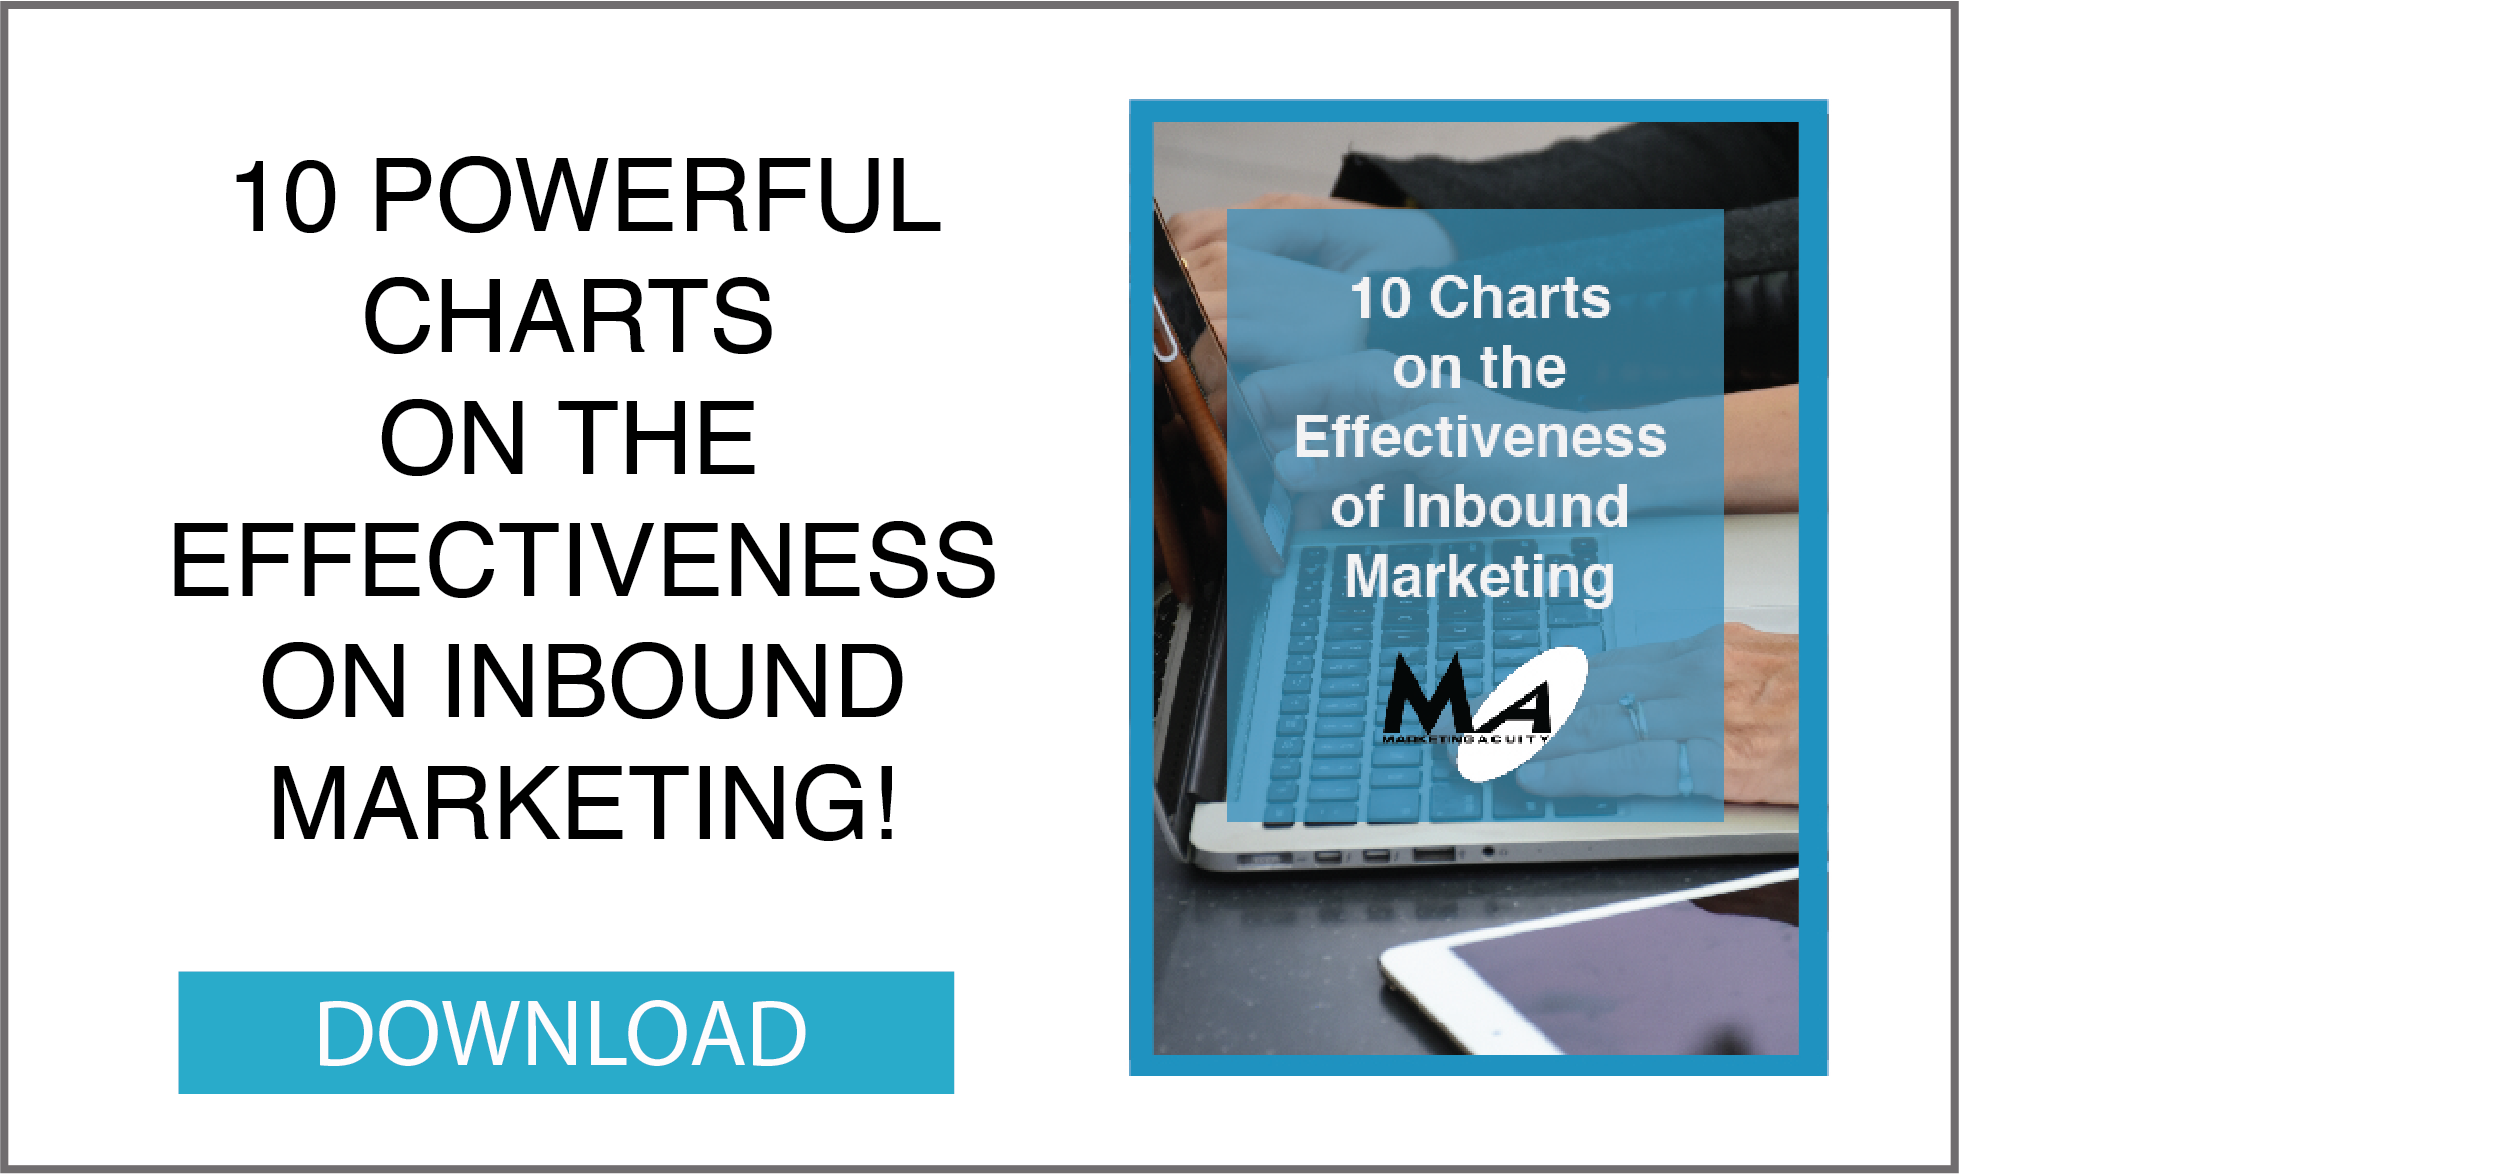 10 Powerful Charts on the effectiveness of inbound marketing